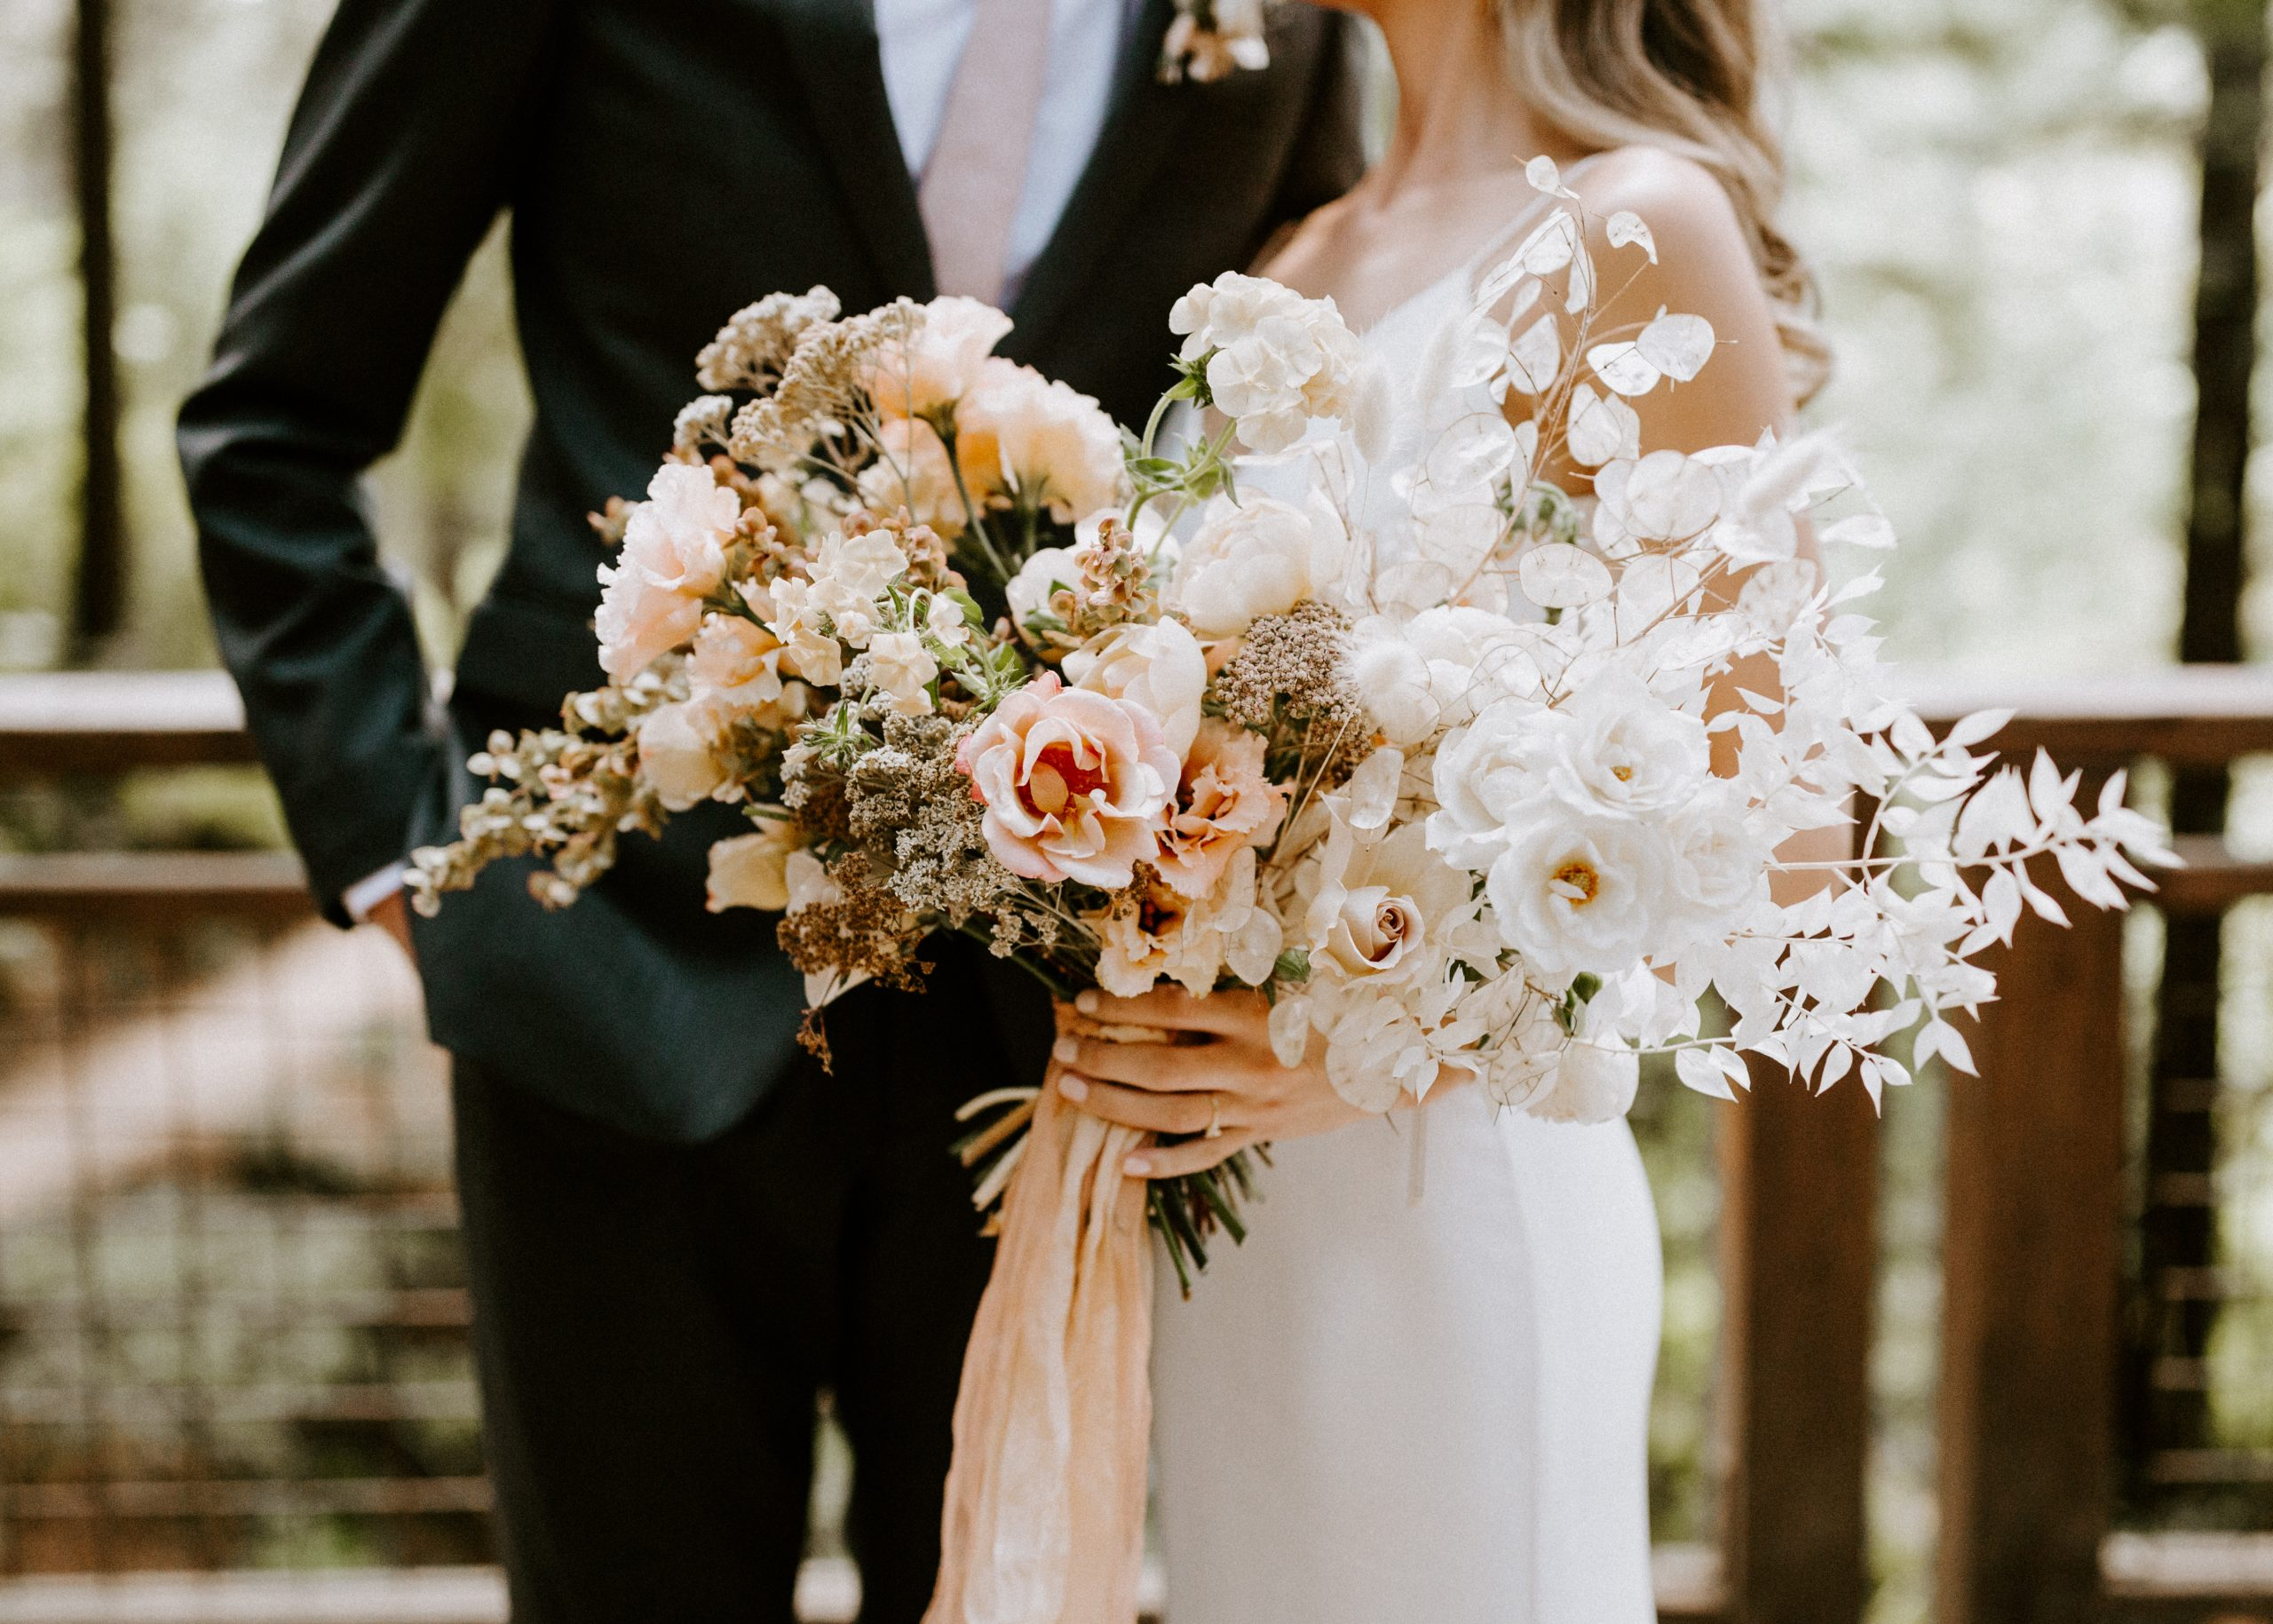 Bride holding a modern style bouquet with blush and white blooms and hanging silk ribbon